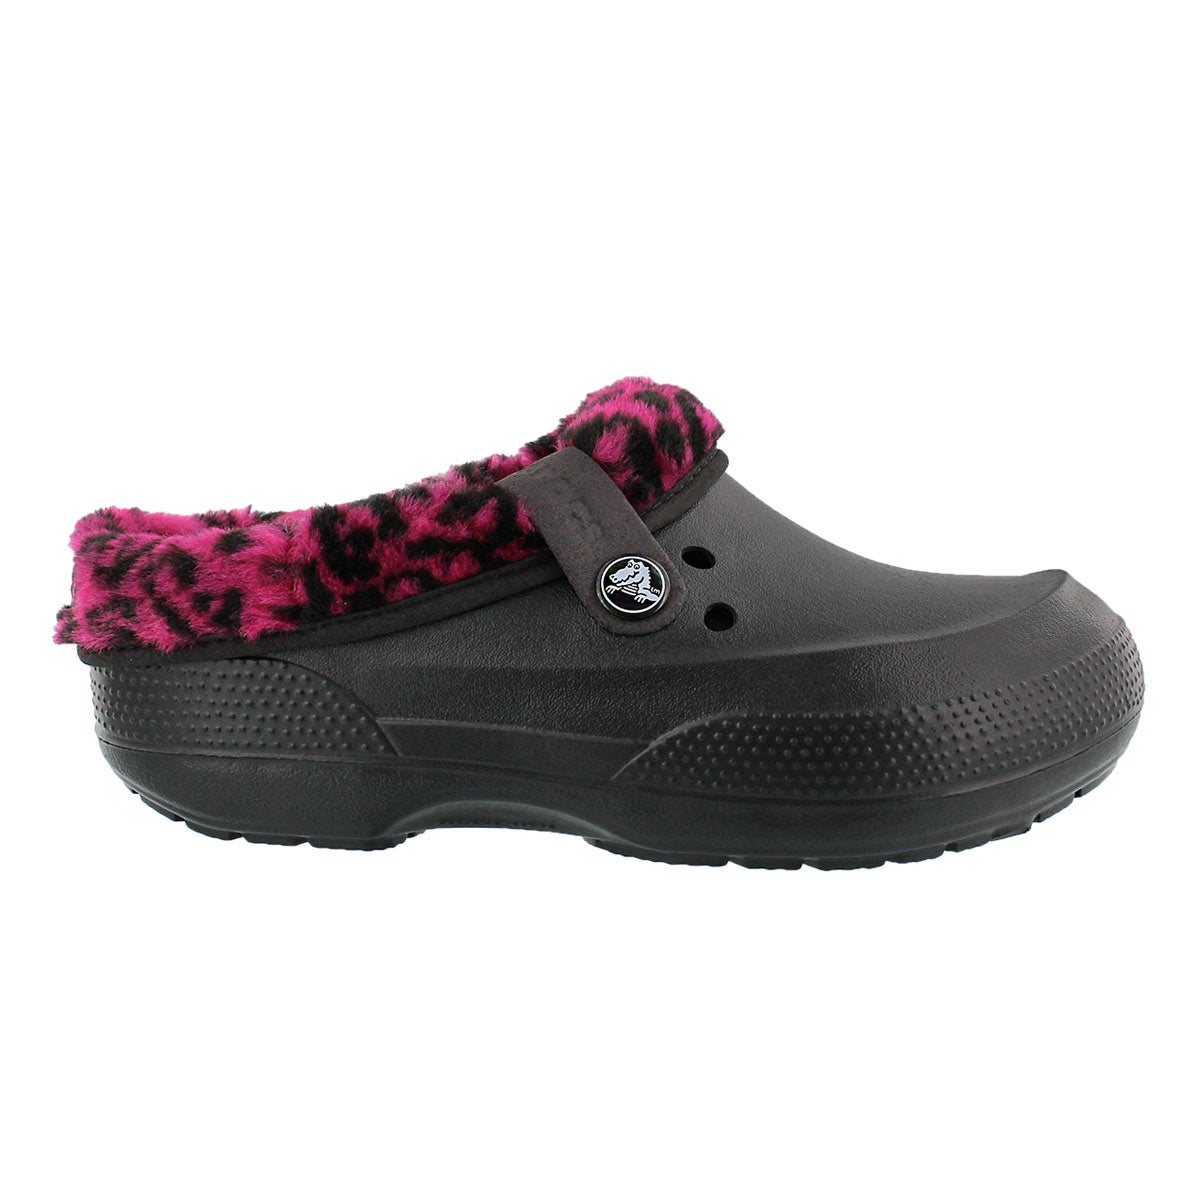 Lds Blitzen II Graphic blk/berry clog